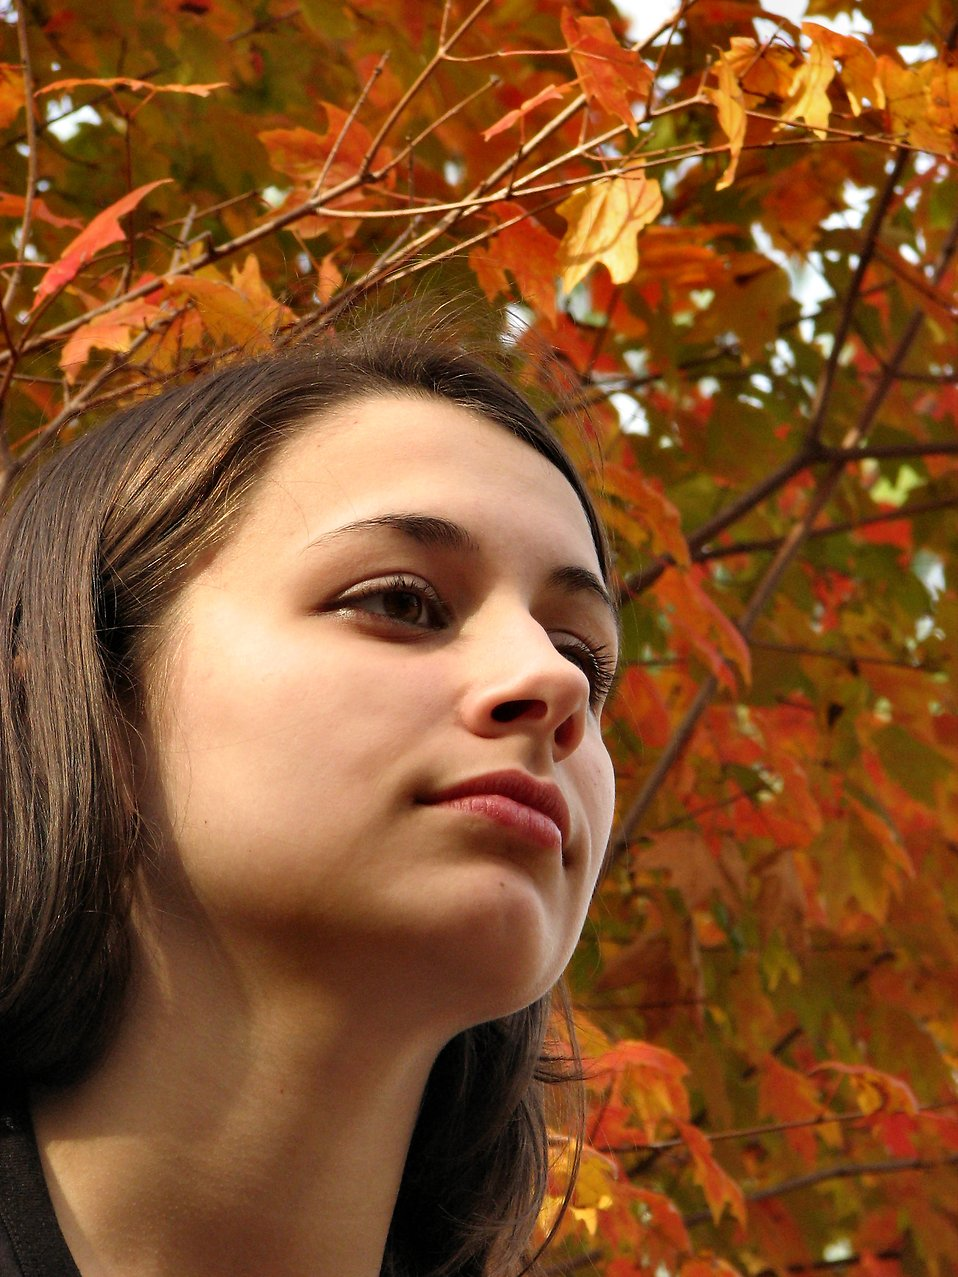 Closeup outdoor portrait of a teen girl : Free Stock Photo